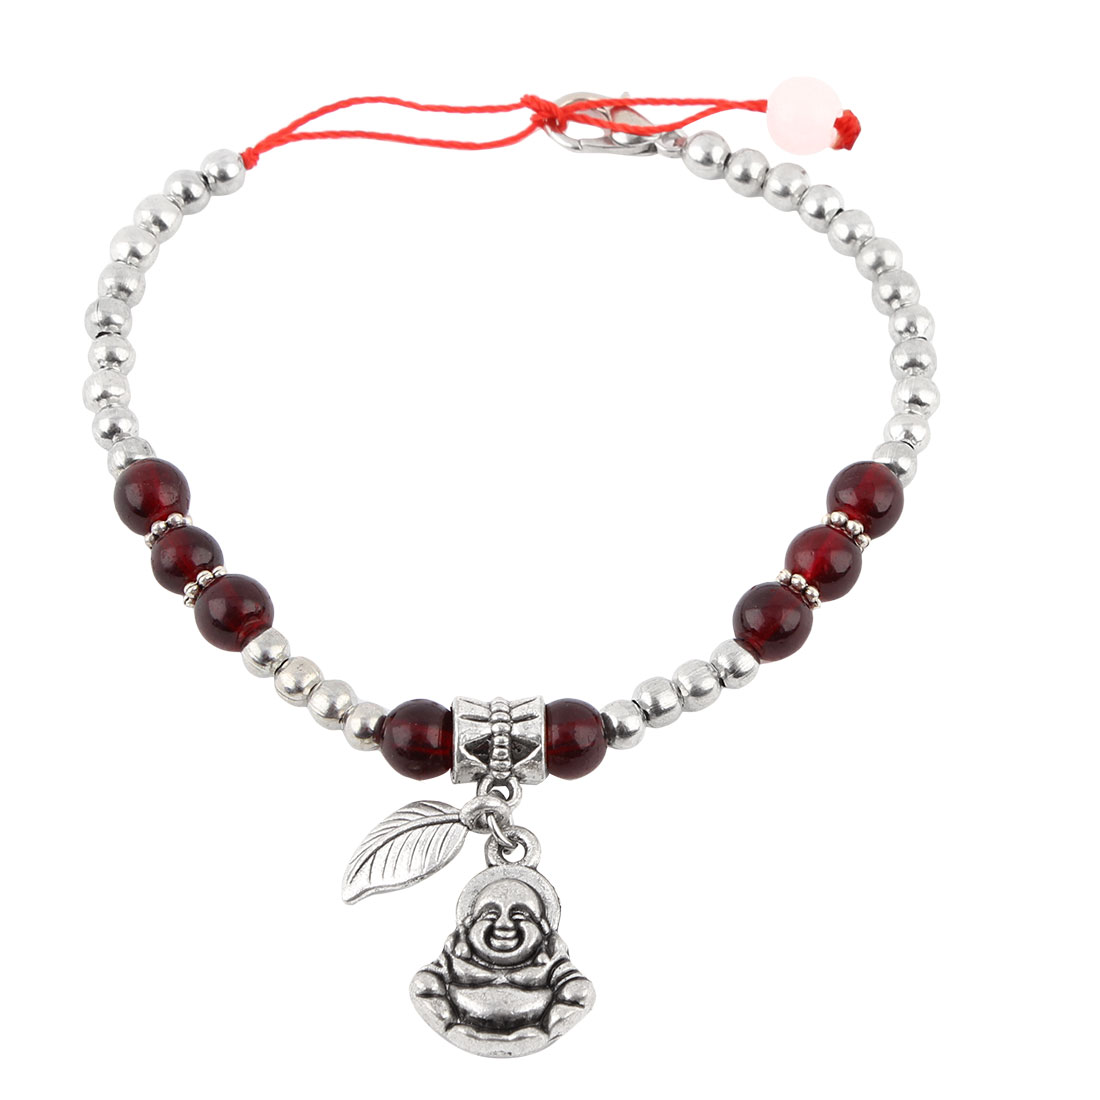 Metal Buddha Shaped Pendant Foot Chain Anklet Silver Tone Carmine for Women